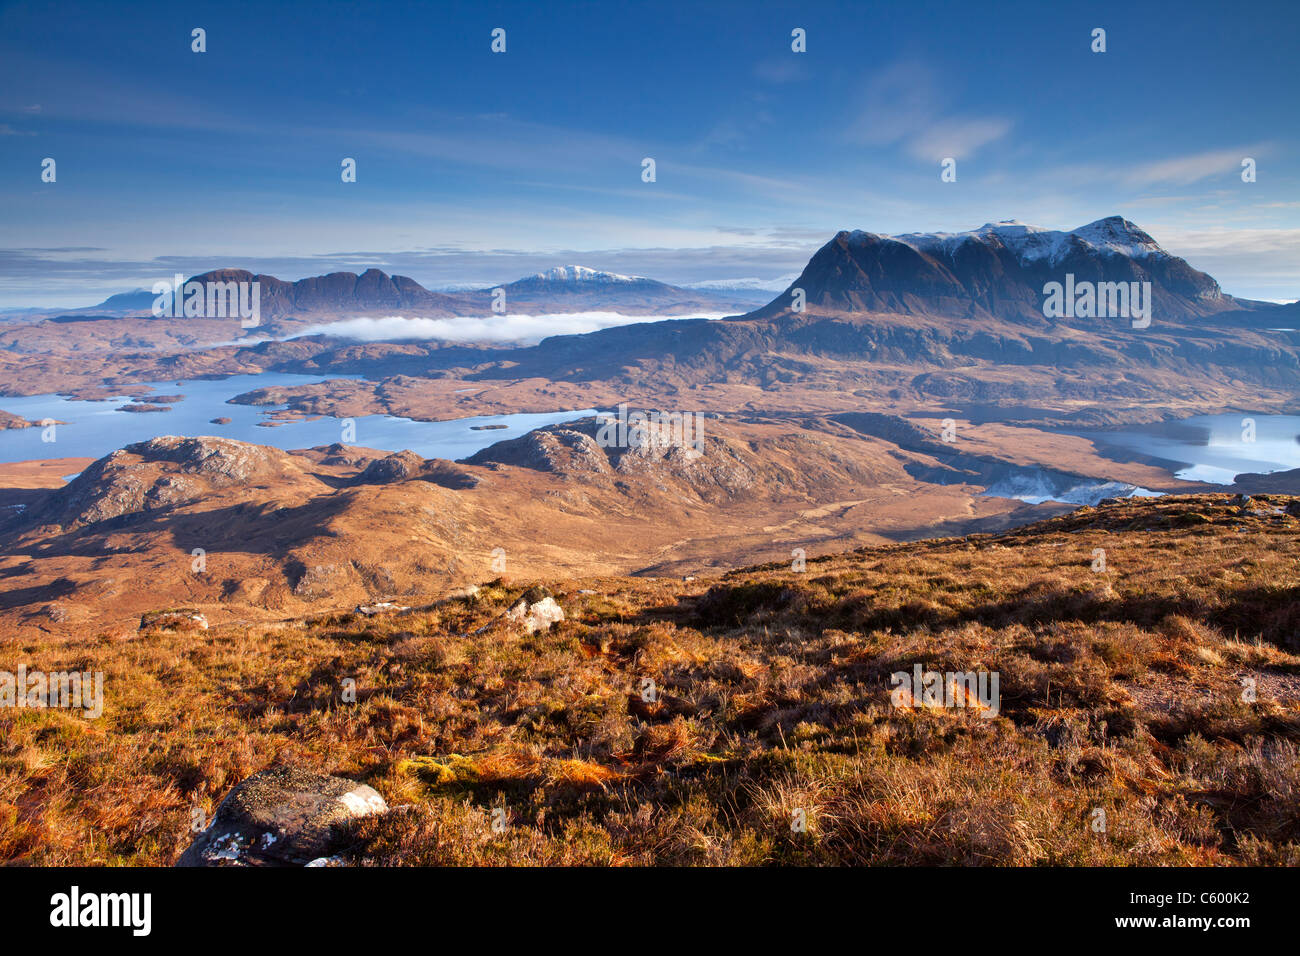 Suilven and Cul Mor mountains from Stac Pollaidh, Assynt, Scotland, UK - Stock Image